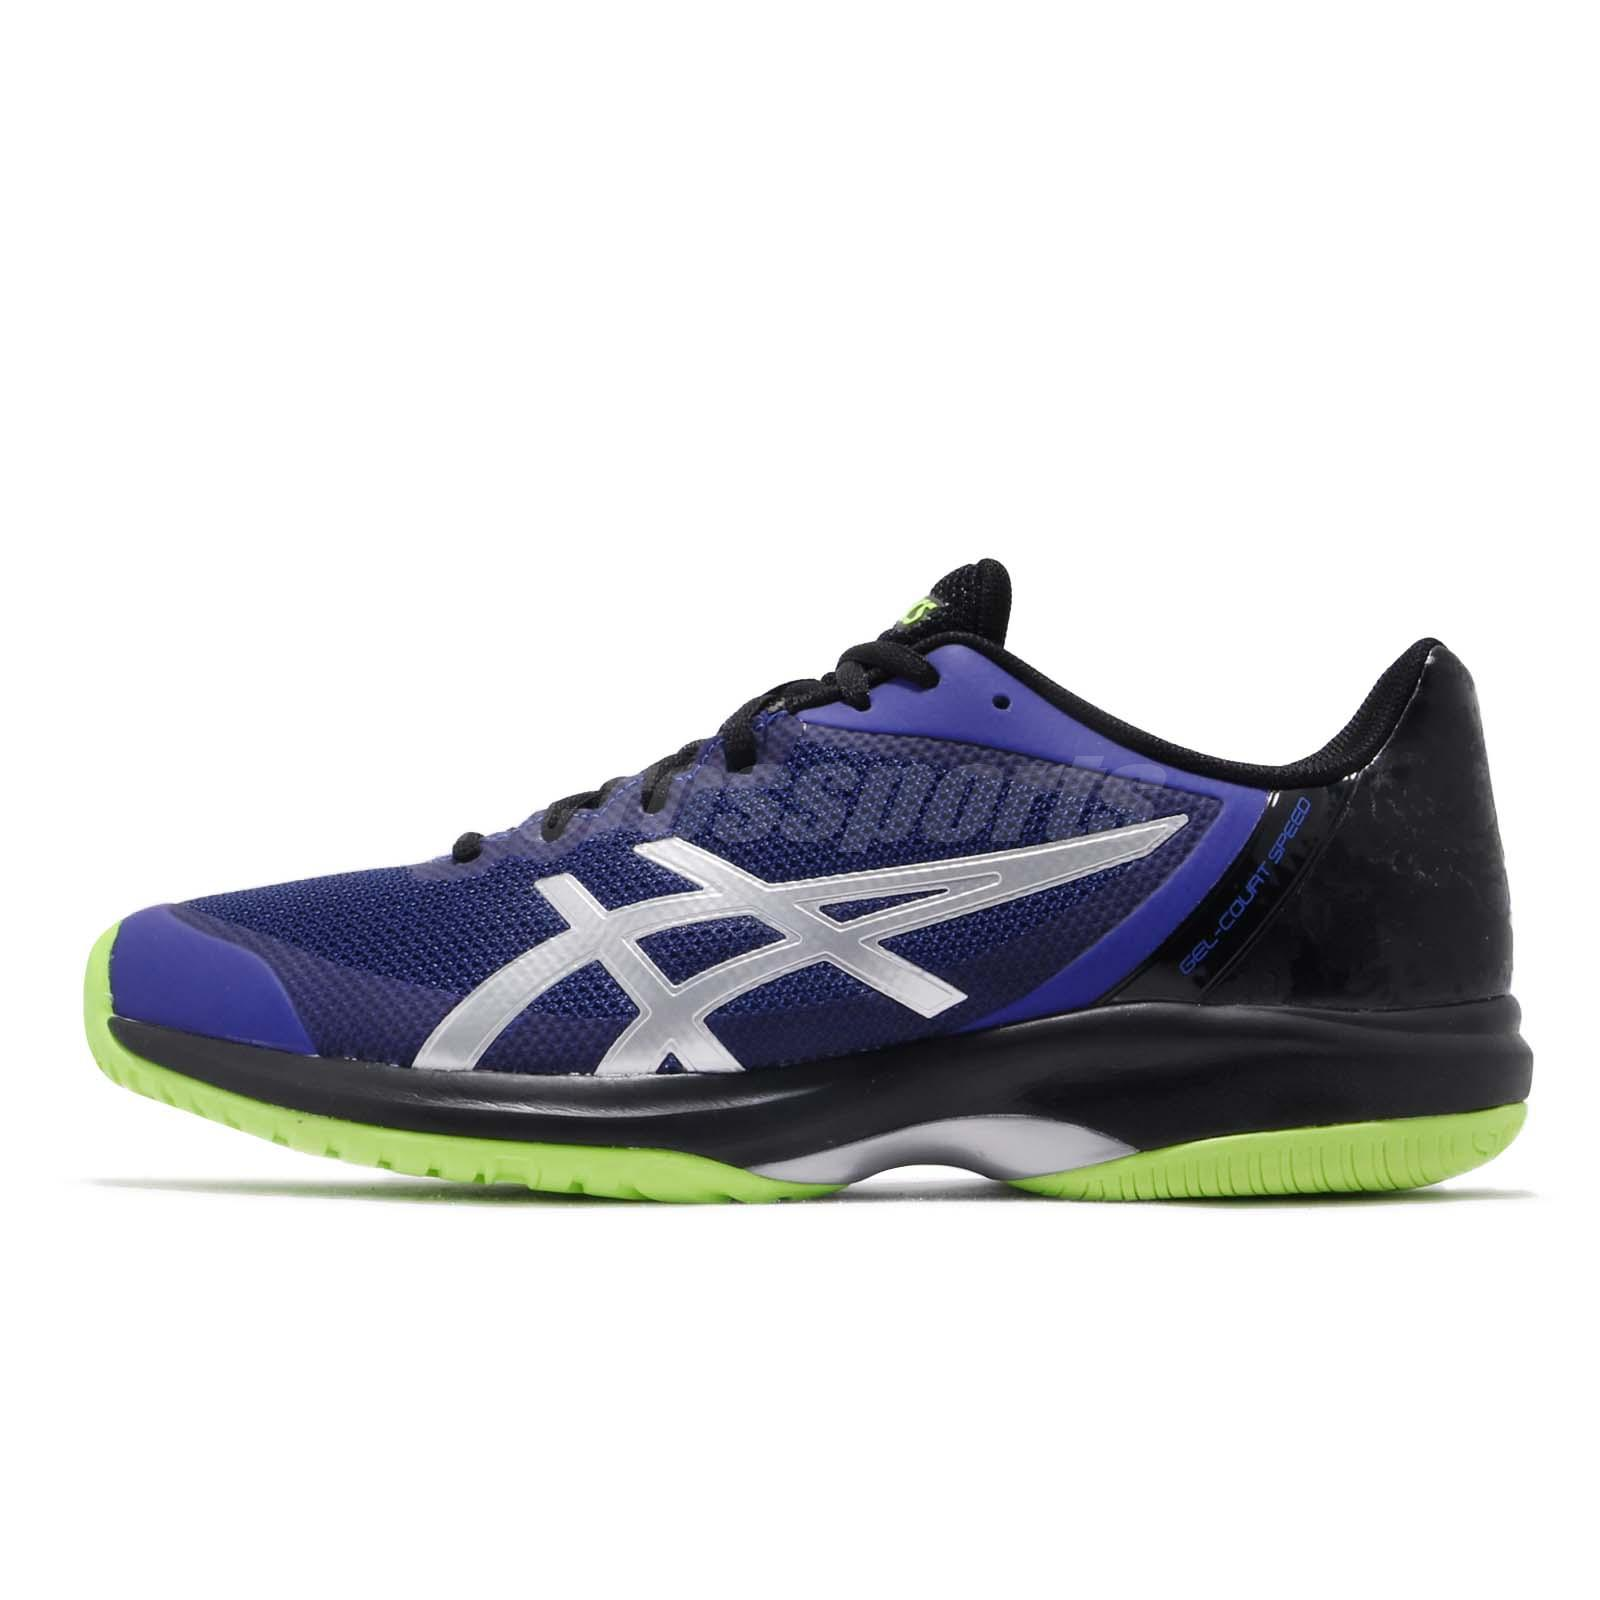 12fabac44523 Asics Gel-Court Speed Blue Silver Black Men Tennis Shoes Sneakers E800N-410